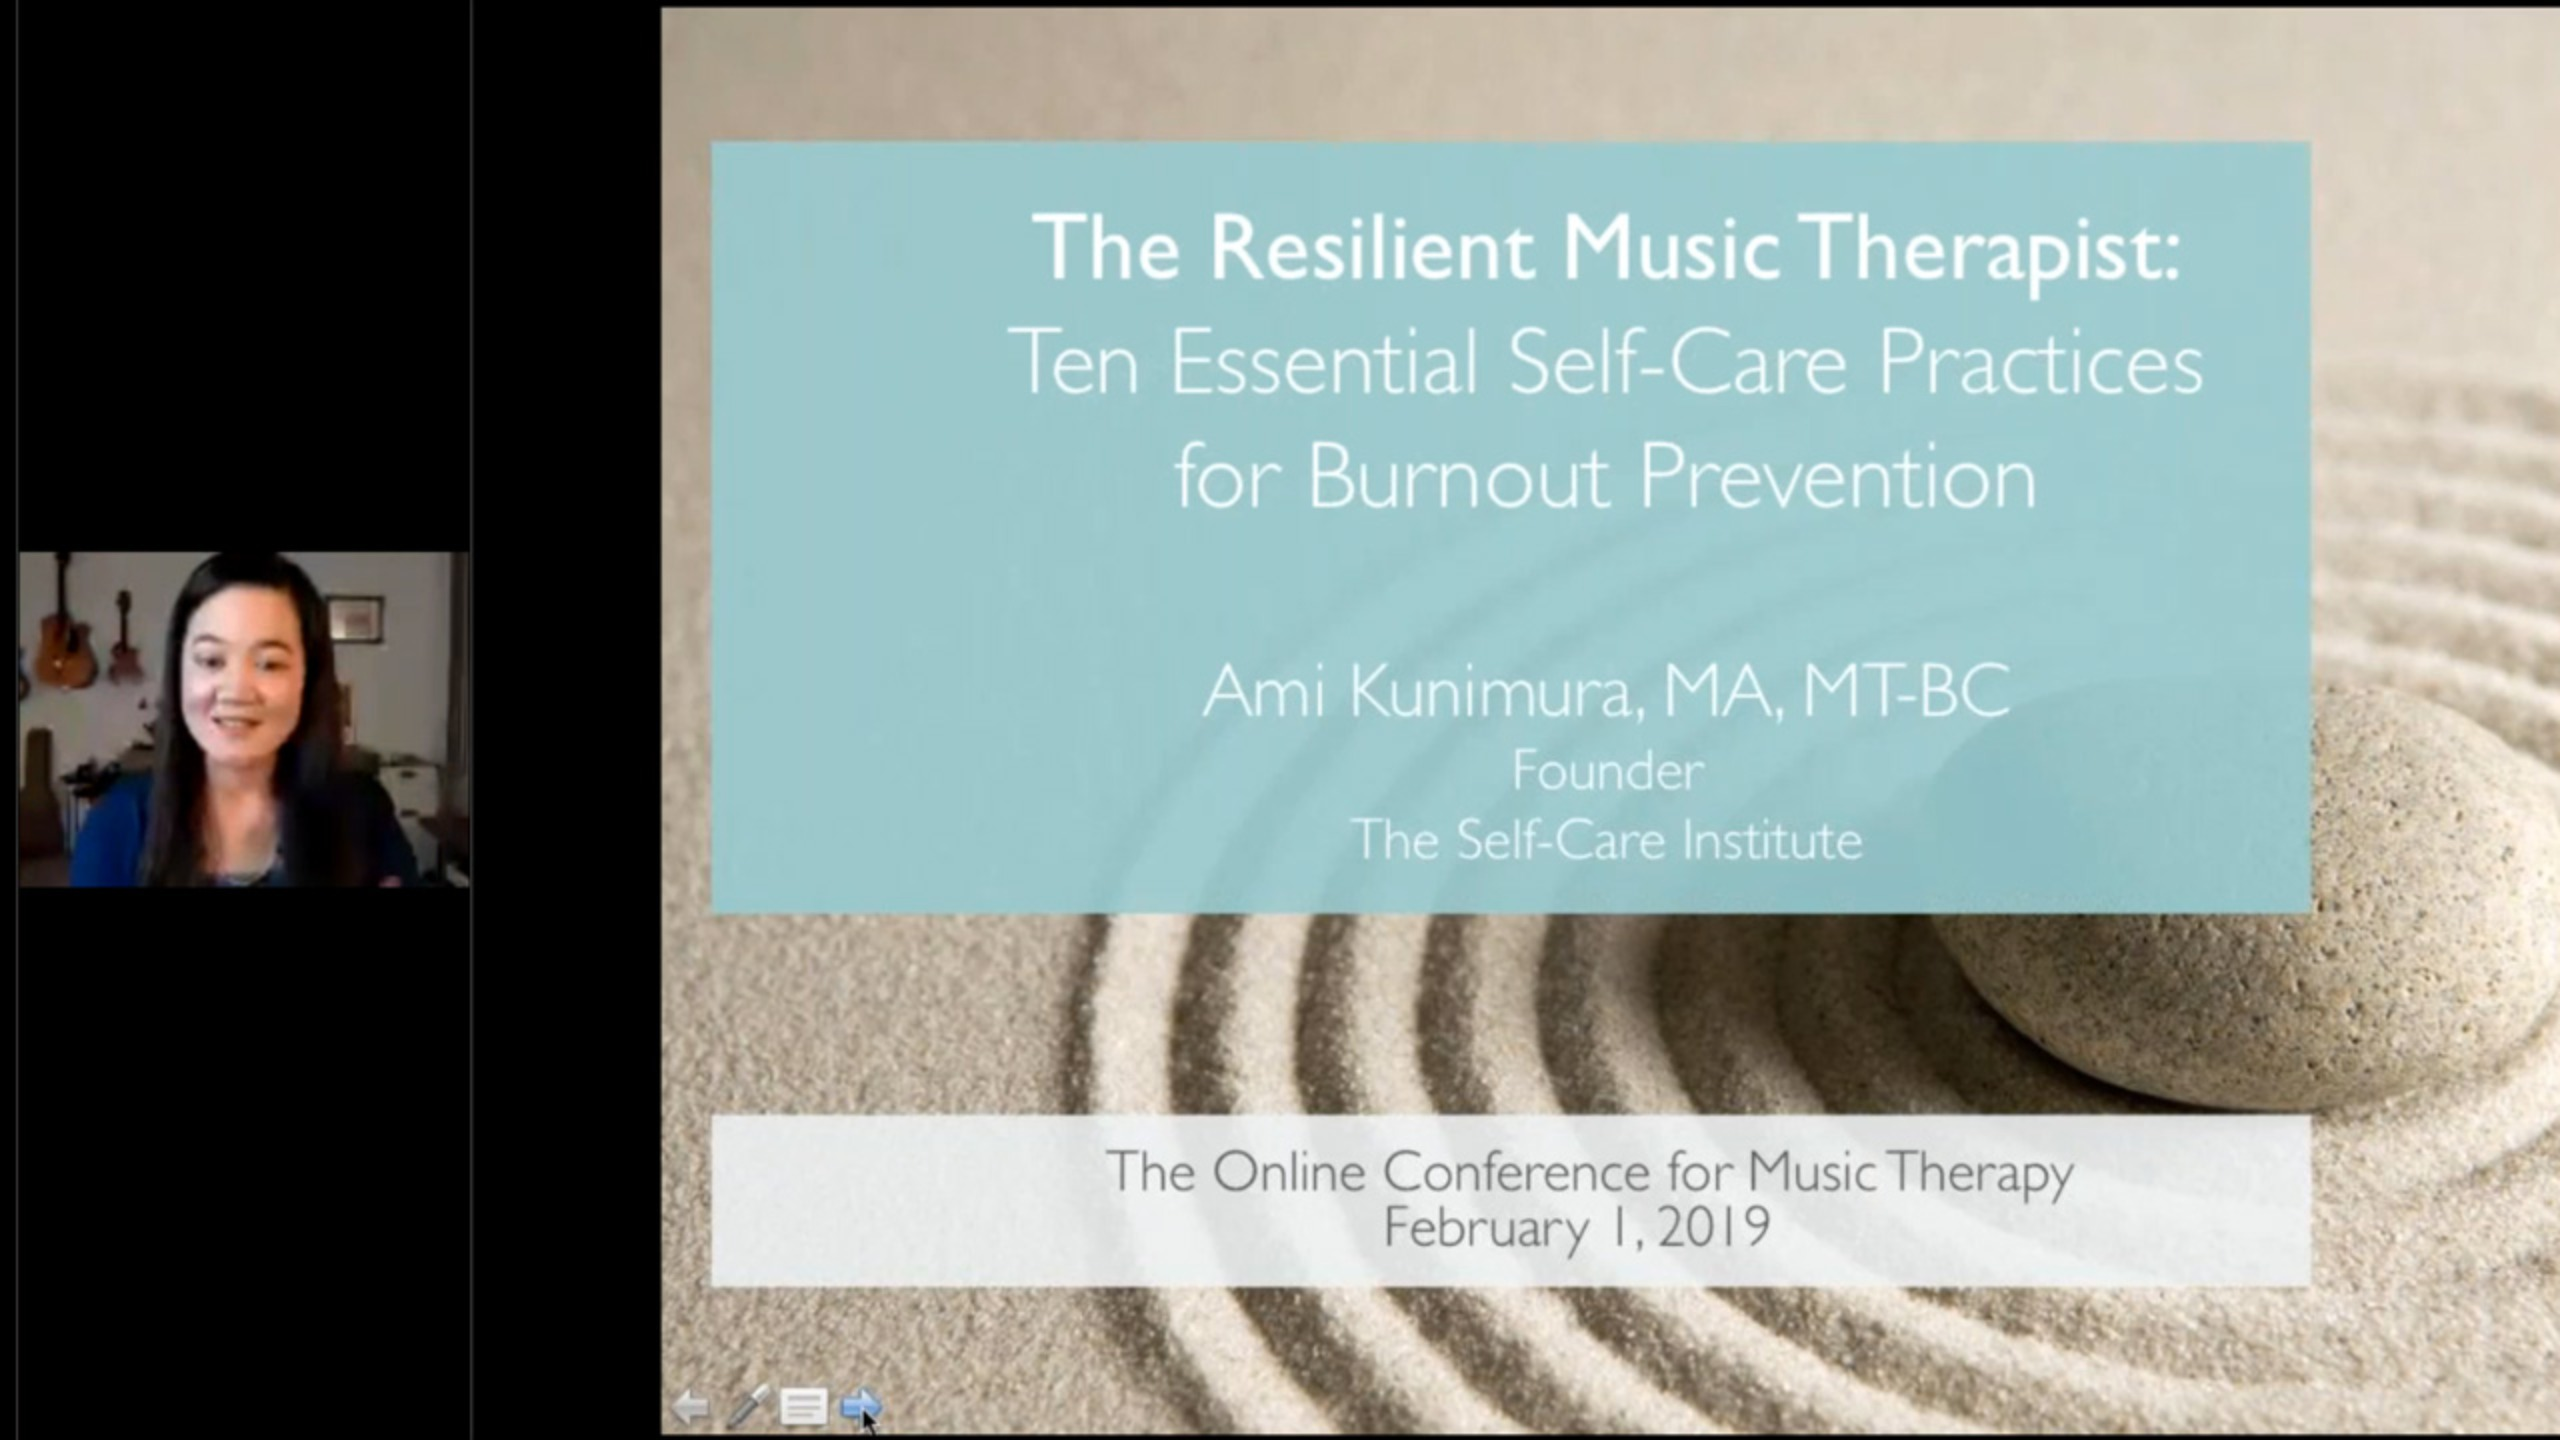 The Resilient Music Therapist: Ten Essential Self-Care Practices for Burnout Prevention